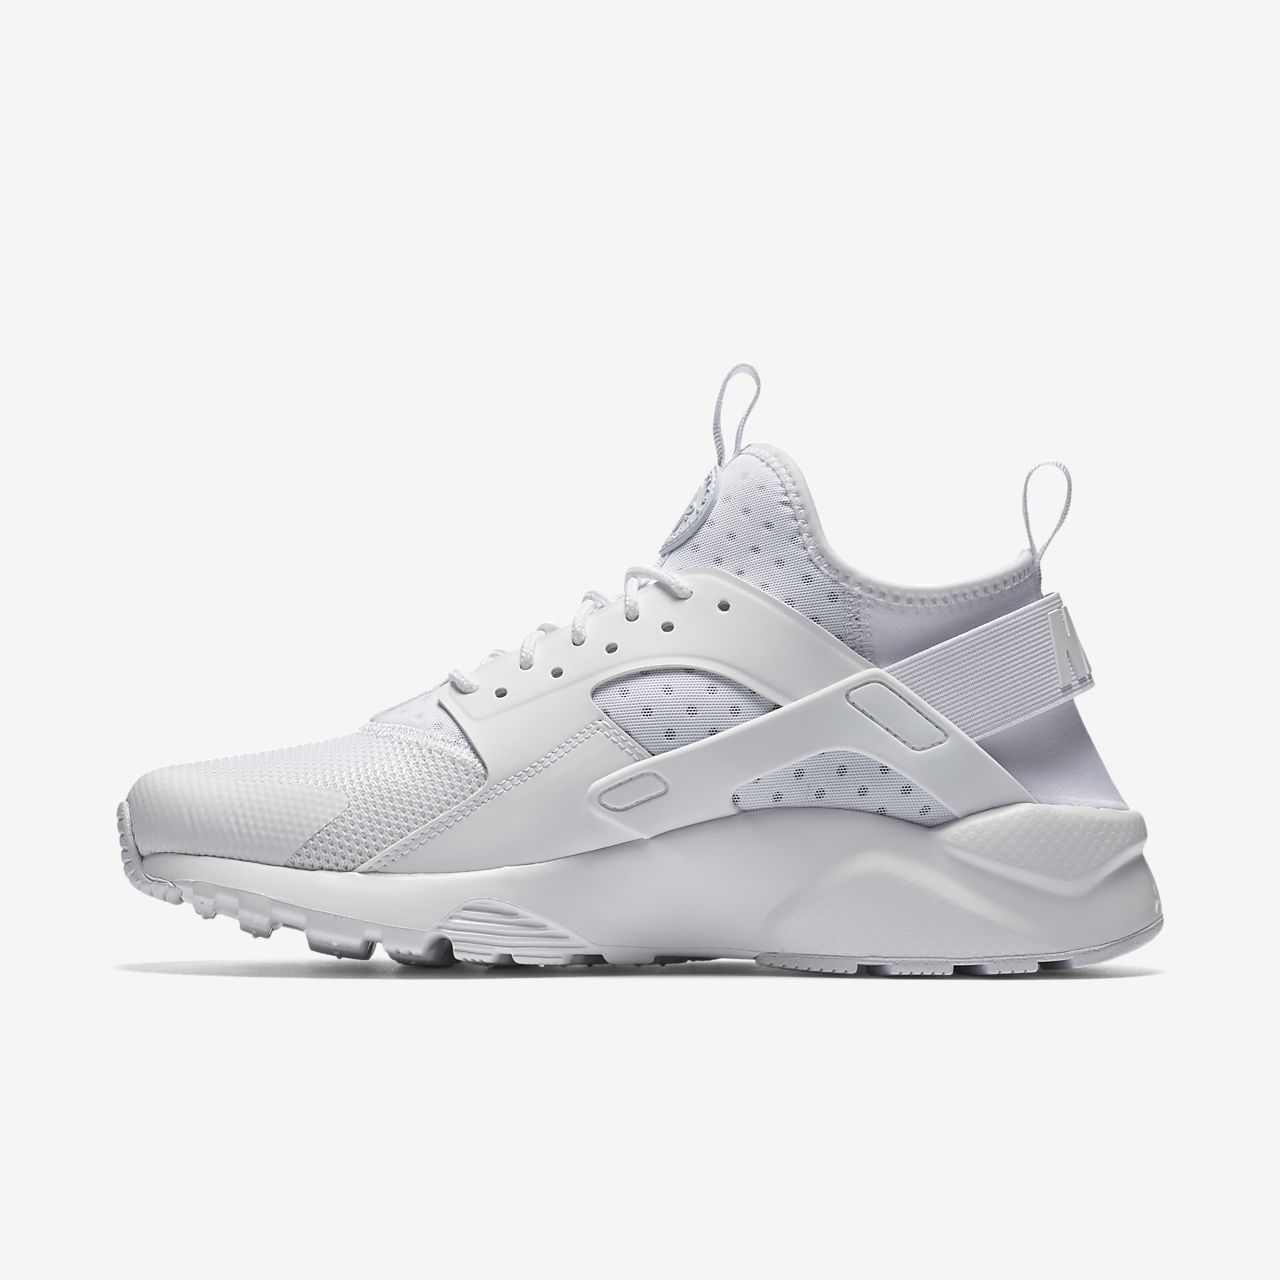 ef72620d6604 ... Nike Air Huarache Ultra Men s Shoe